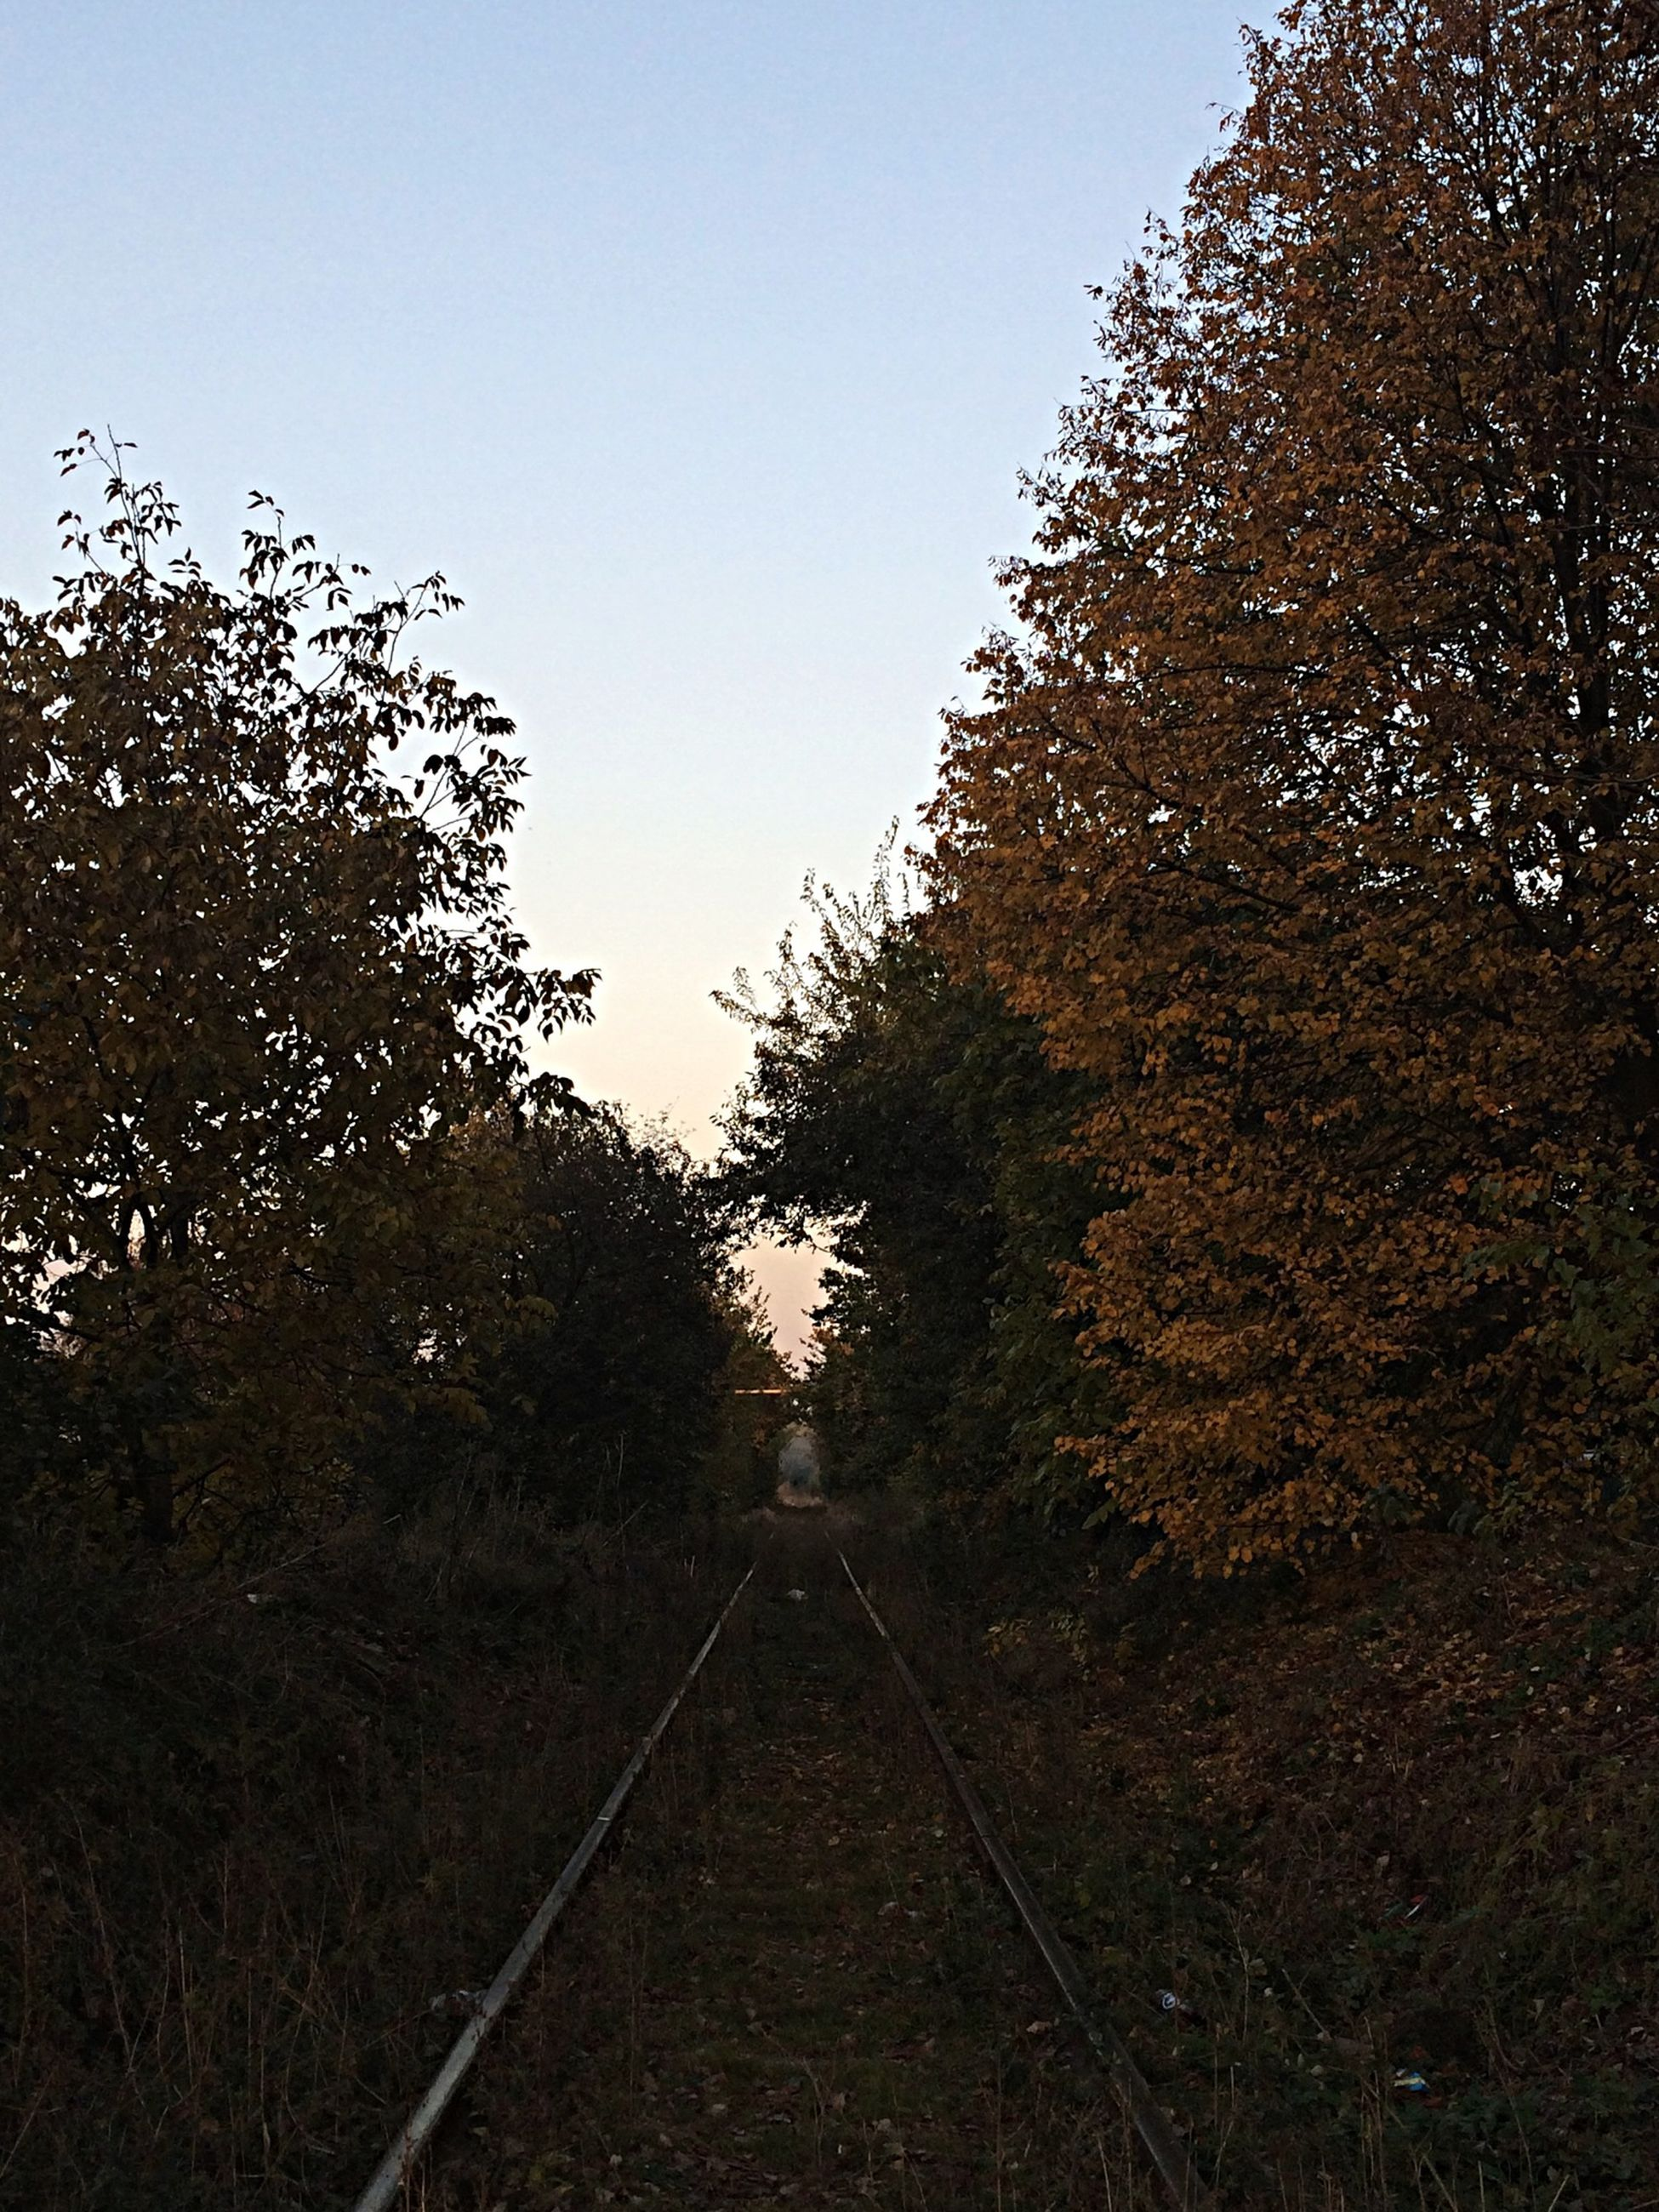 clear sky, the way forward, tree, transportation, diminishing perspective, vanishing point, railroad track, copy space, sky, tranquility, road, nature, growth, tranquil scene, outdoors, no people, rail transportation, day, landscape, long